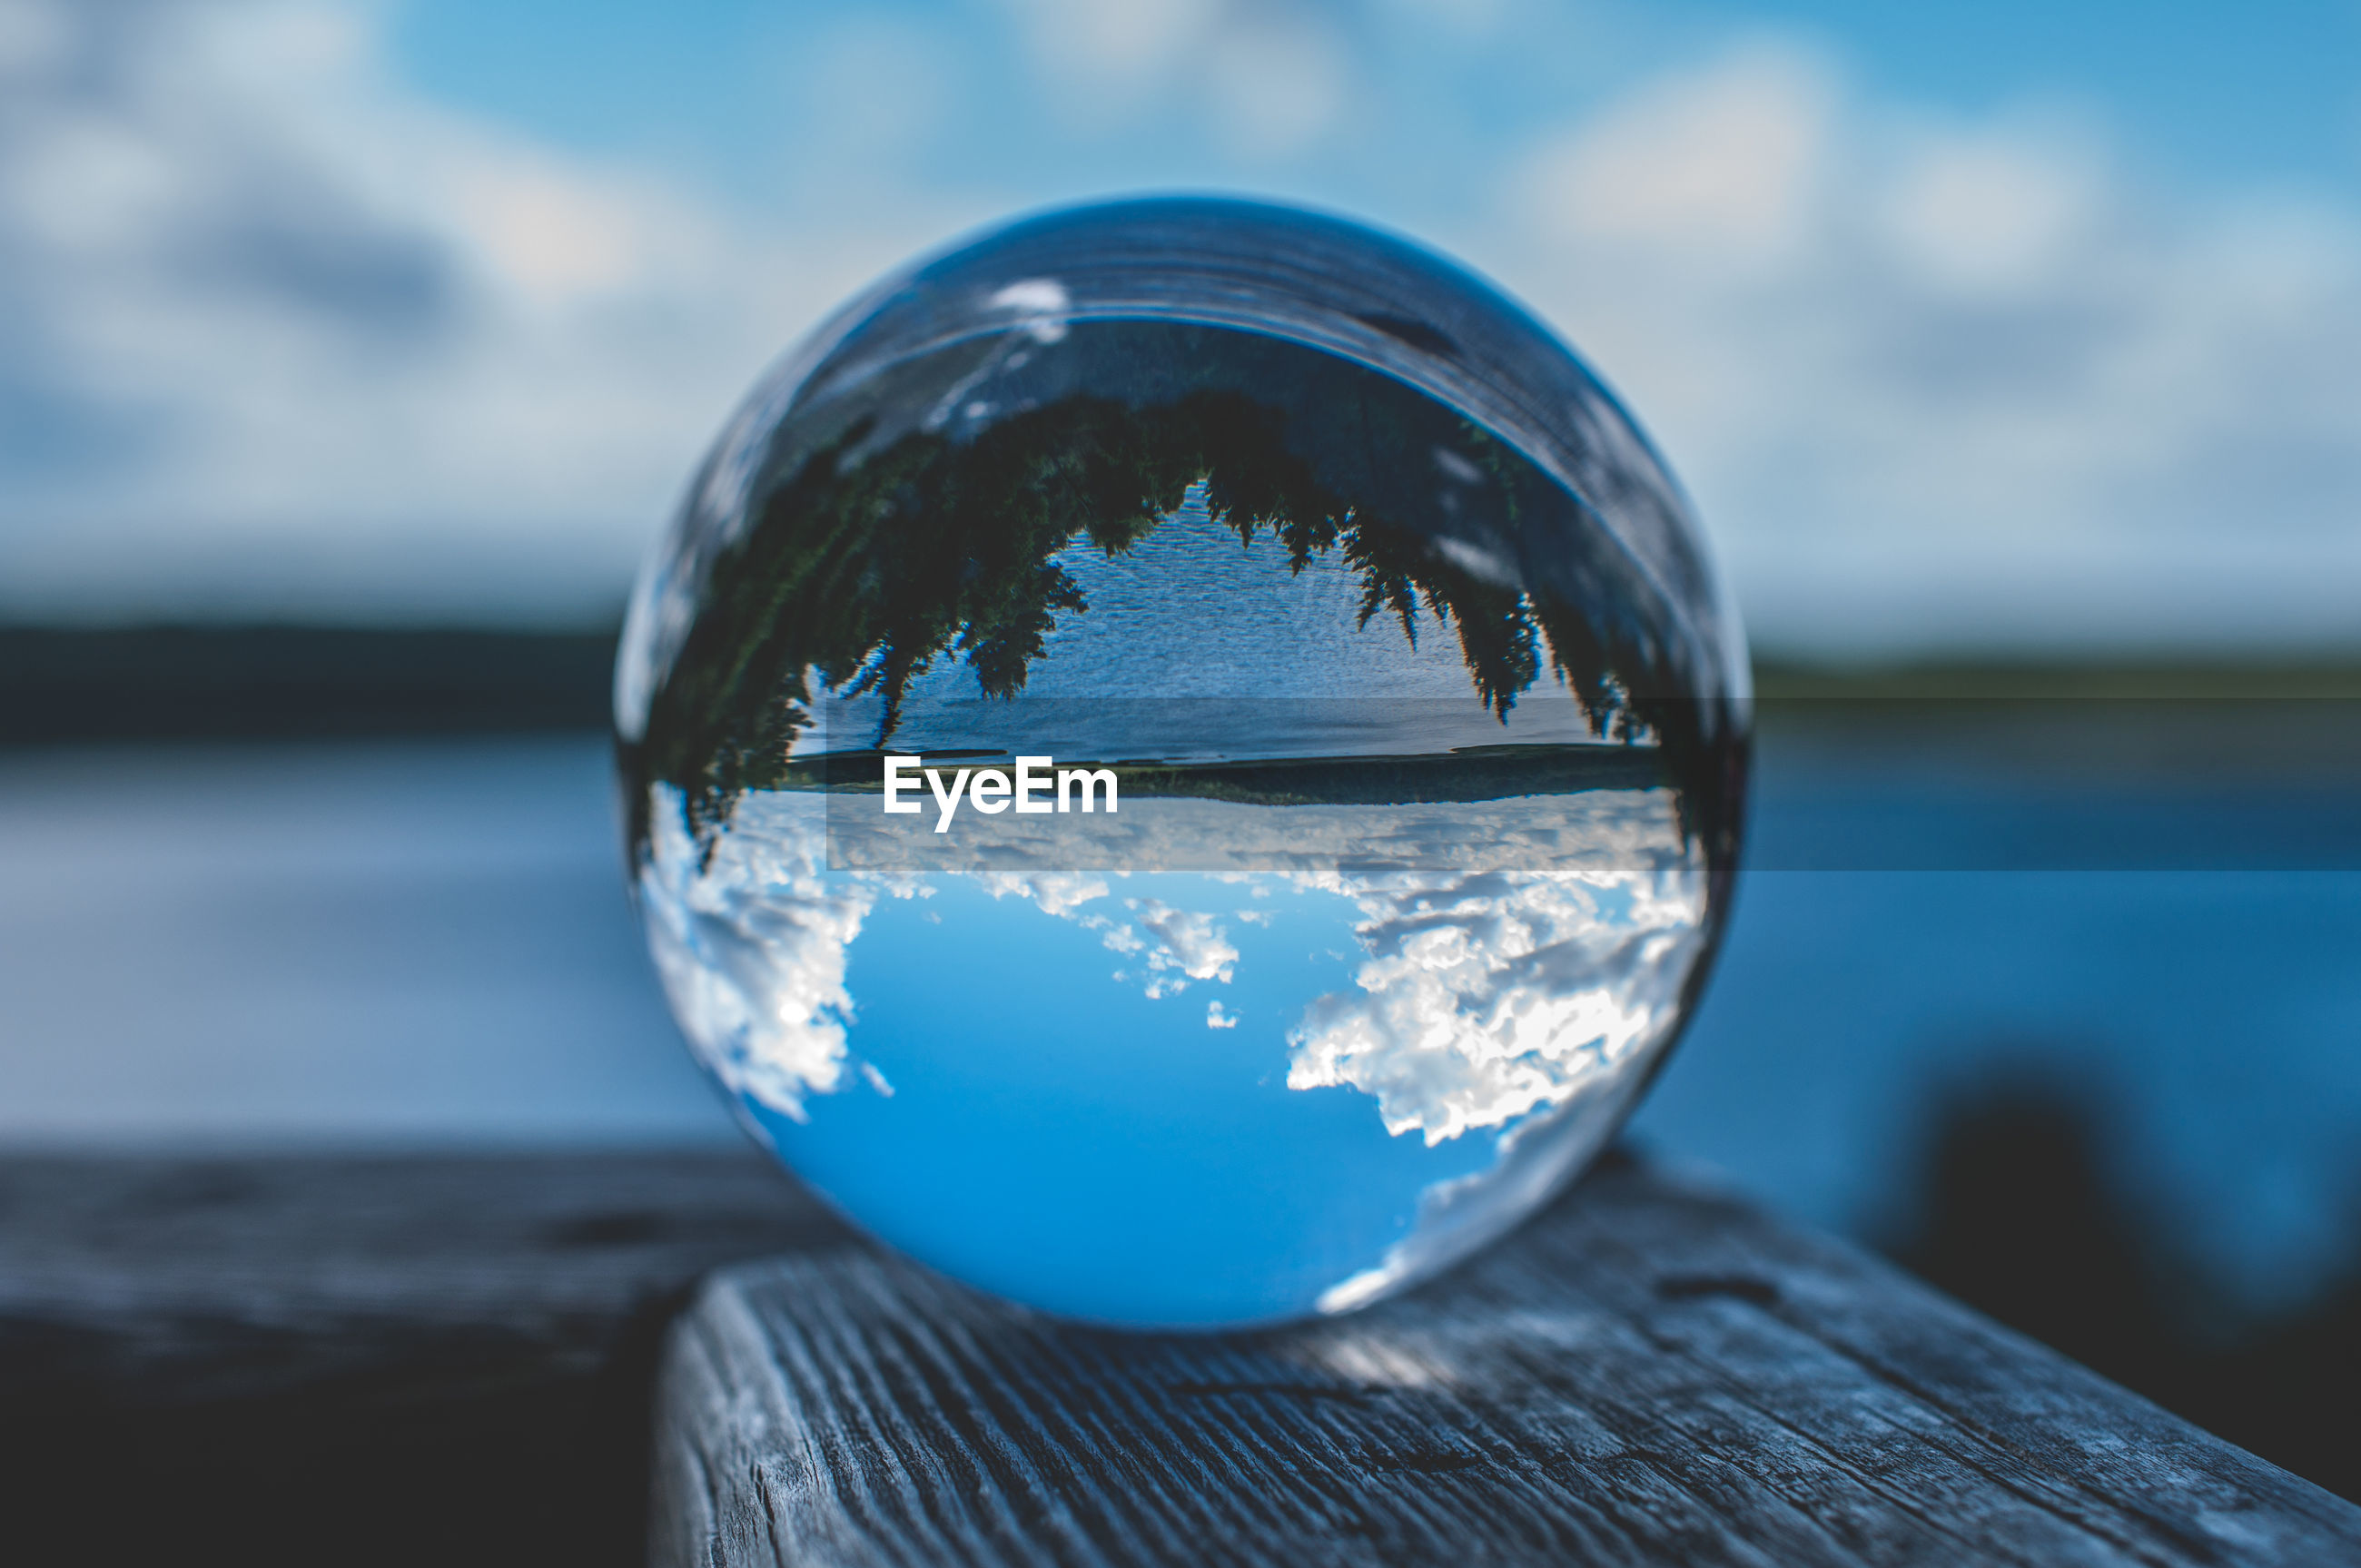 UPSIDE DOWN IMAGE OF WATER BALL ON GLASS